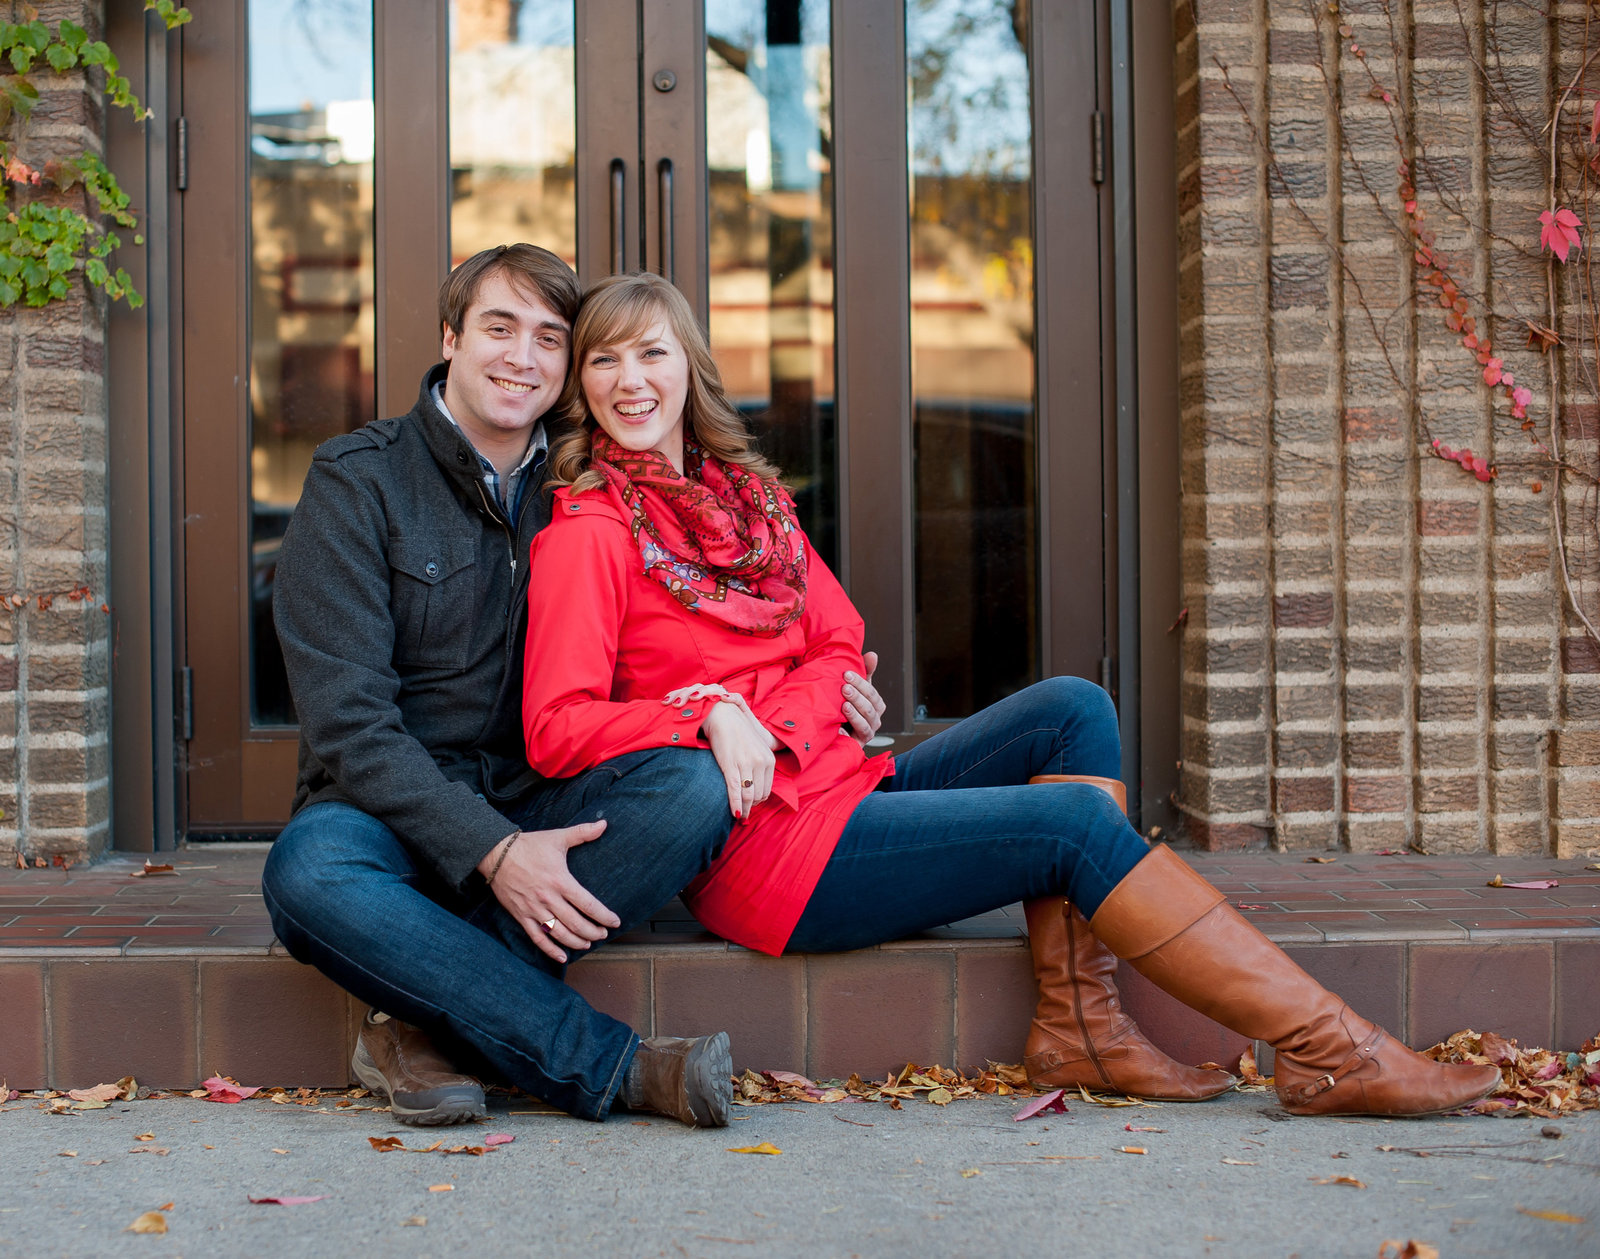 Downtown Fargo fall engagement session kris kandel